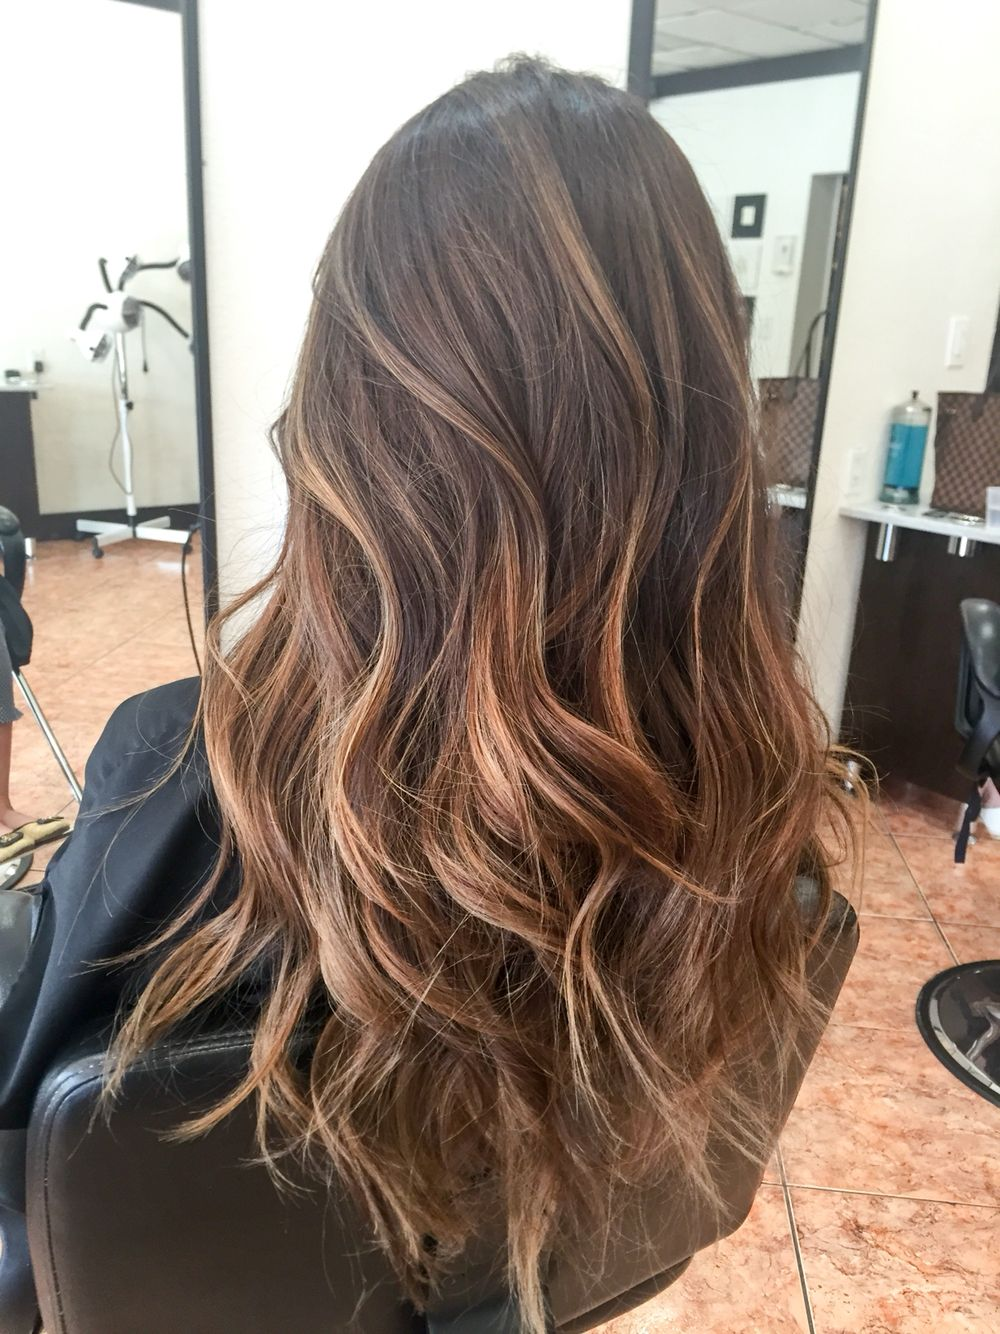 caramel balayage highlights on dark hair best balayage. Black Bedroom Furniture Sets. Home Design Ideas